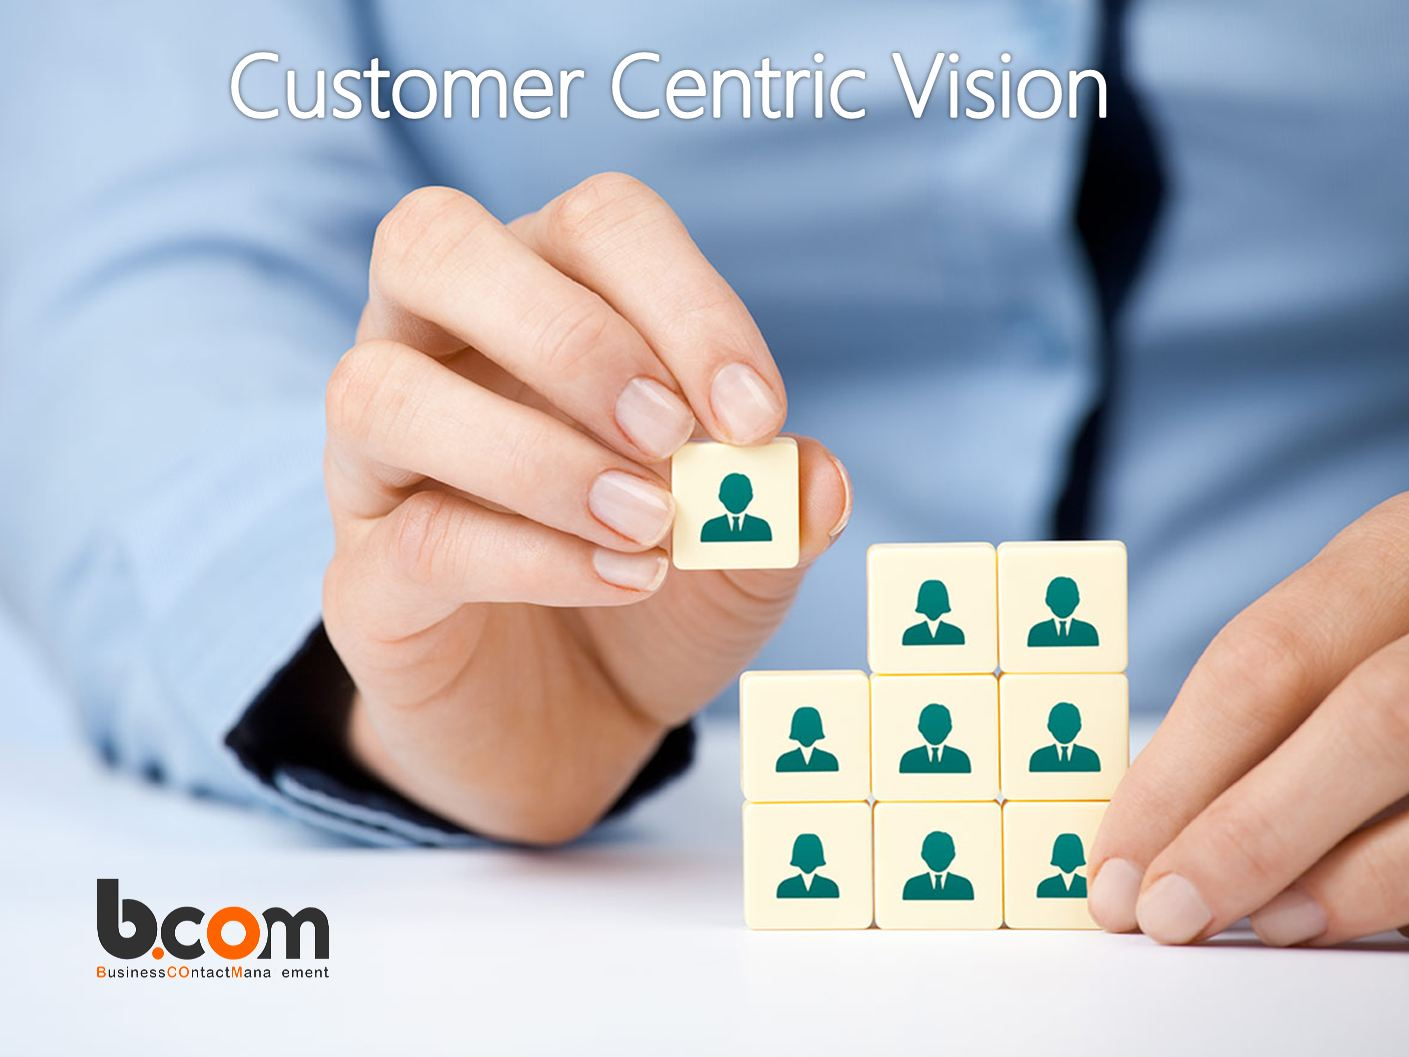 bcom-single-customer-view